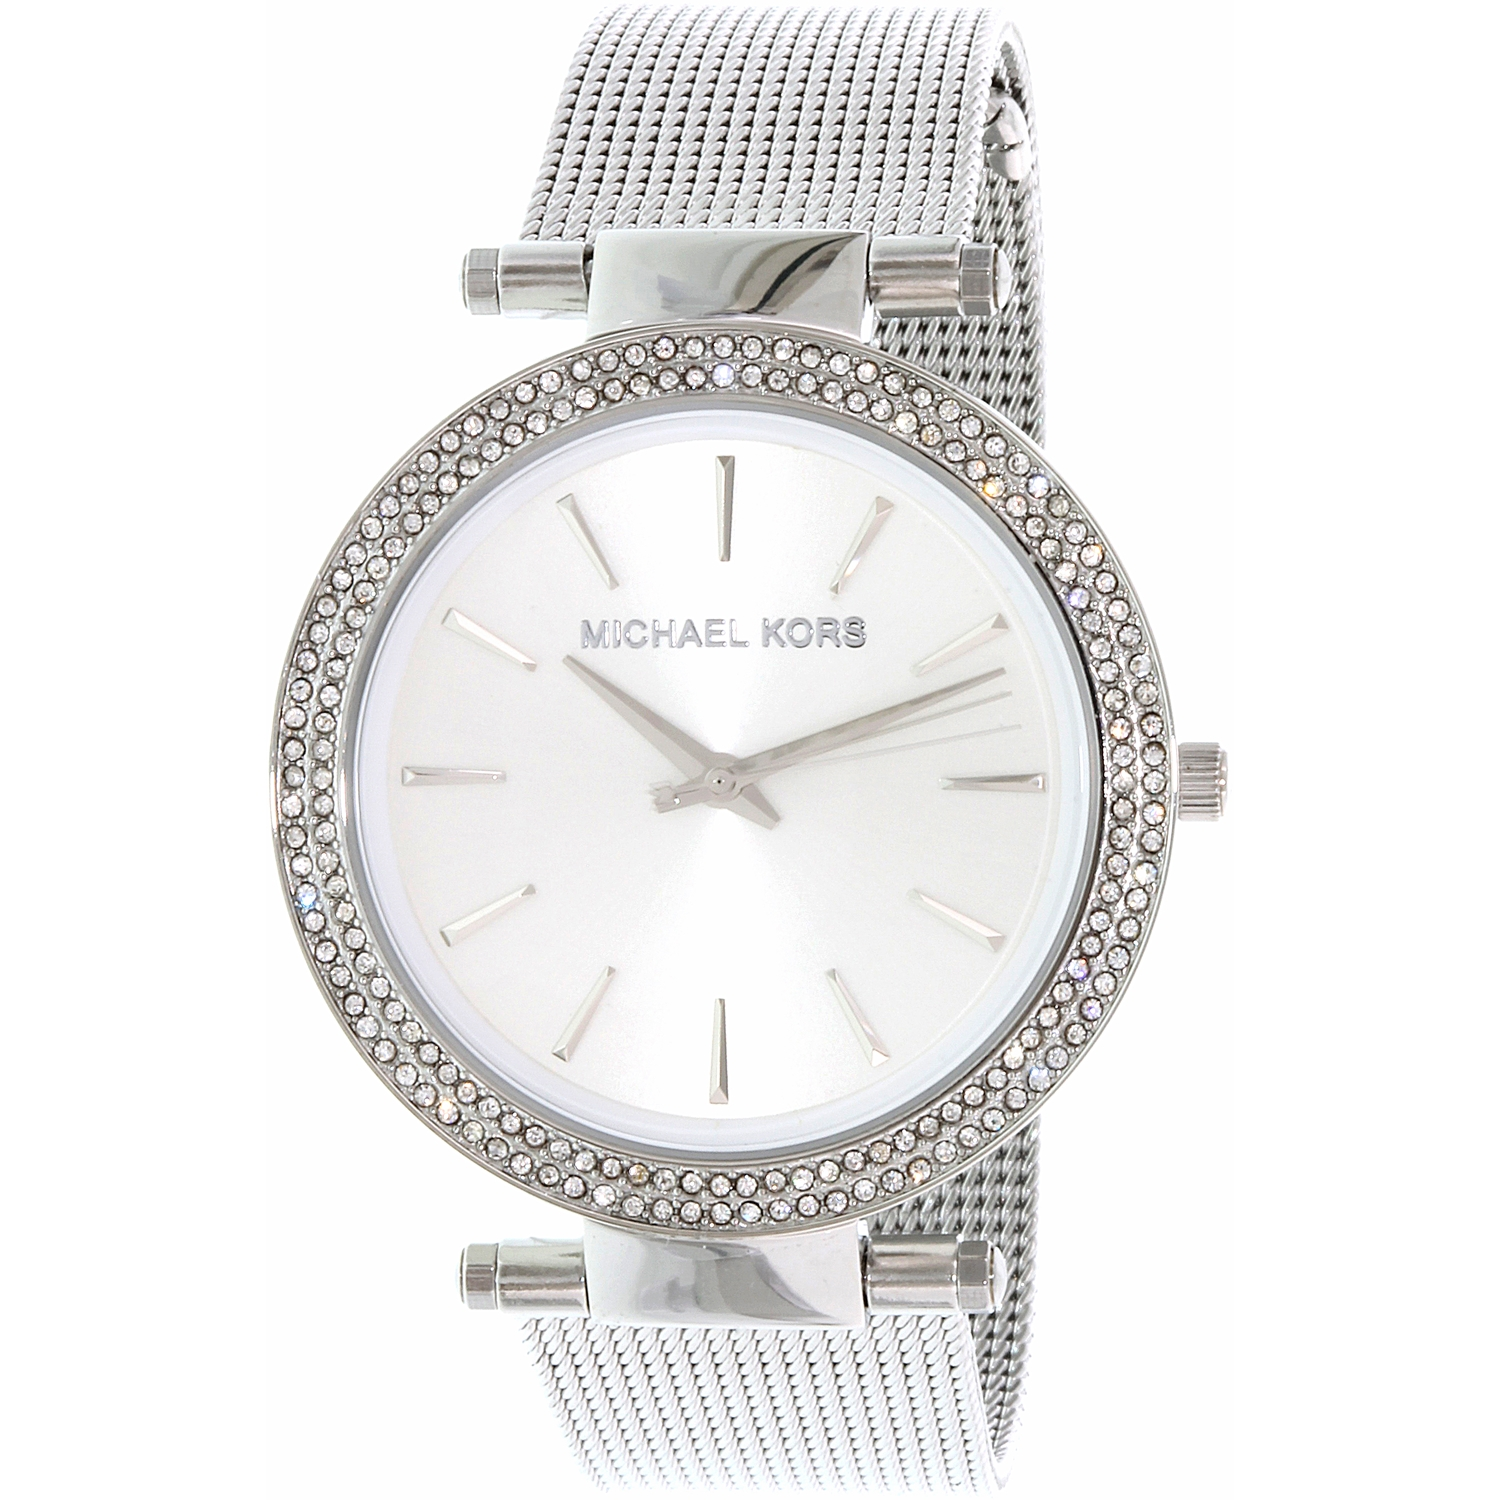 Michael Kors Women's Darci MK3367 Silver Stainless-Steel Quartz Fashion Watch